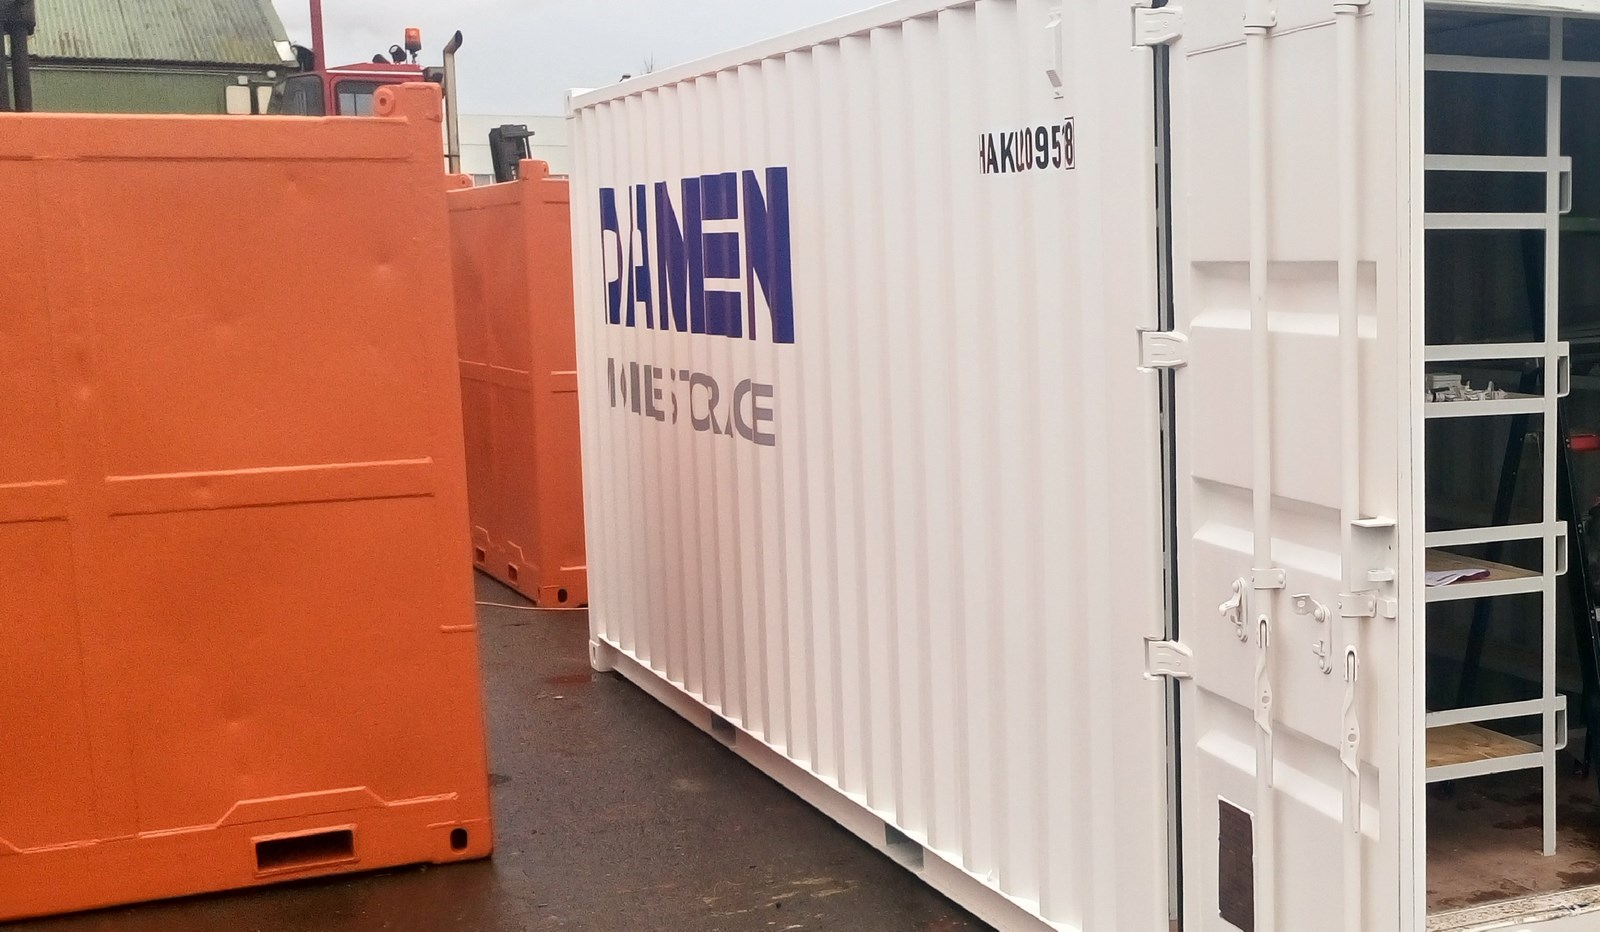 The Damen Mobile Storange can be delivered to any location due to the customer request.